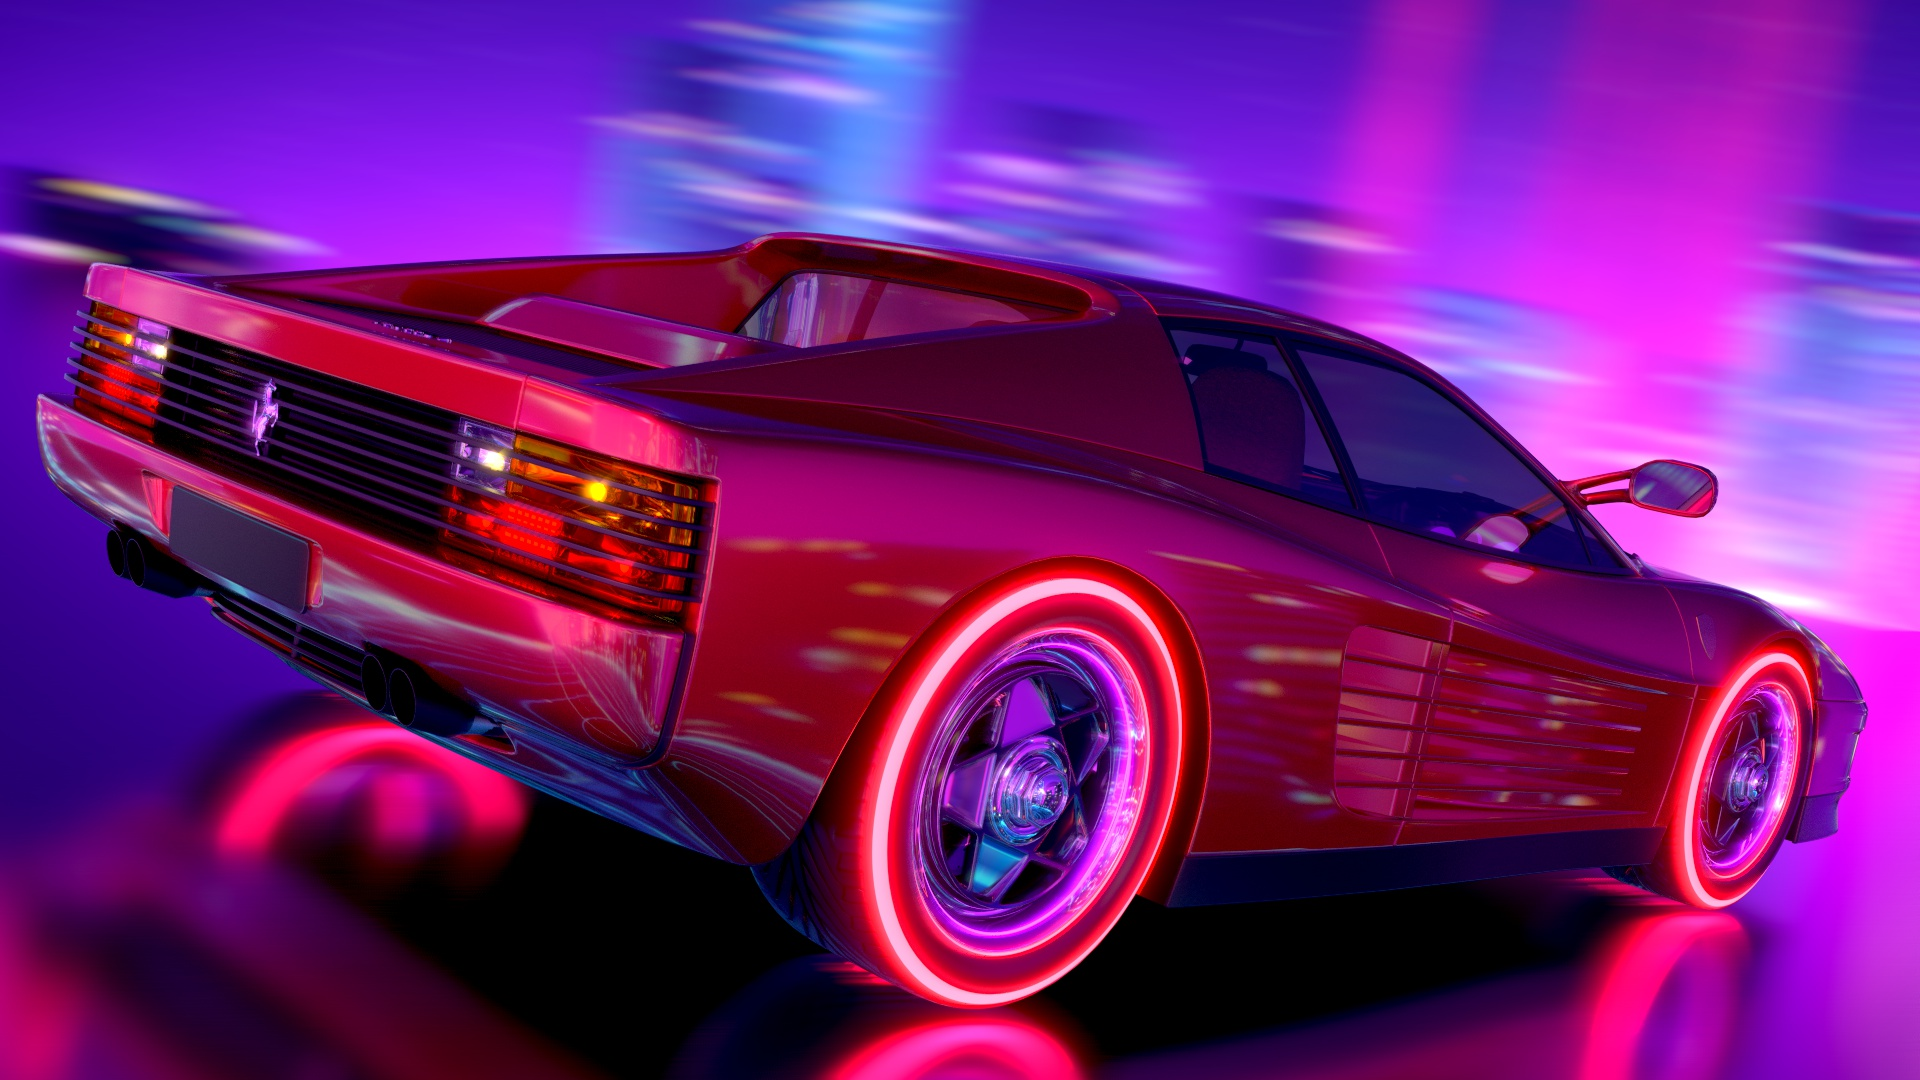 Ferrari Testarossa Retrowave Hd Artist 4k Wallpapers Images Backgrounds Photos And Pictures